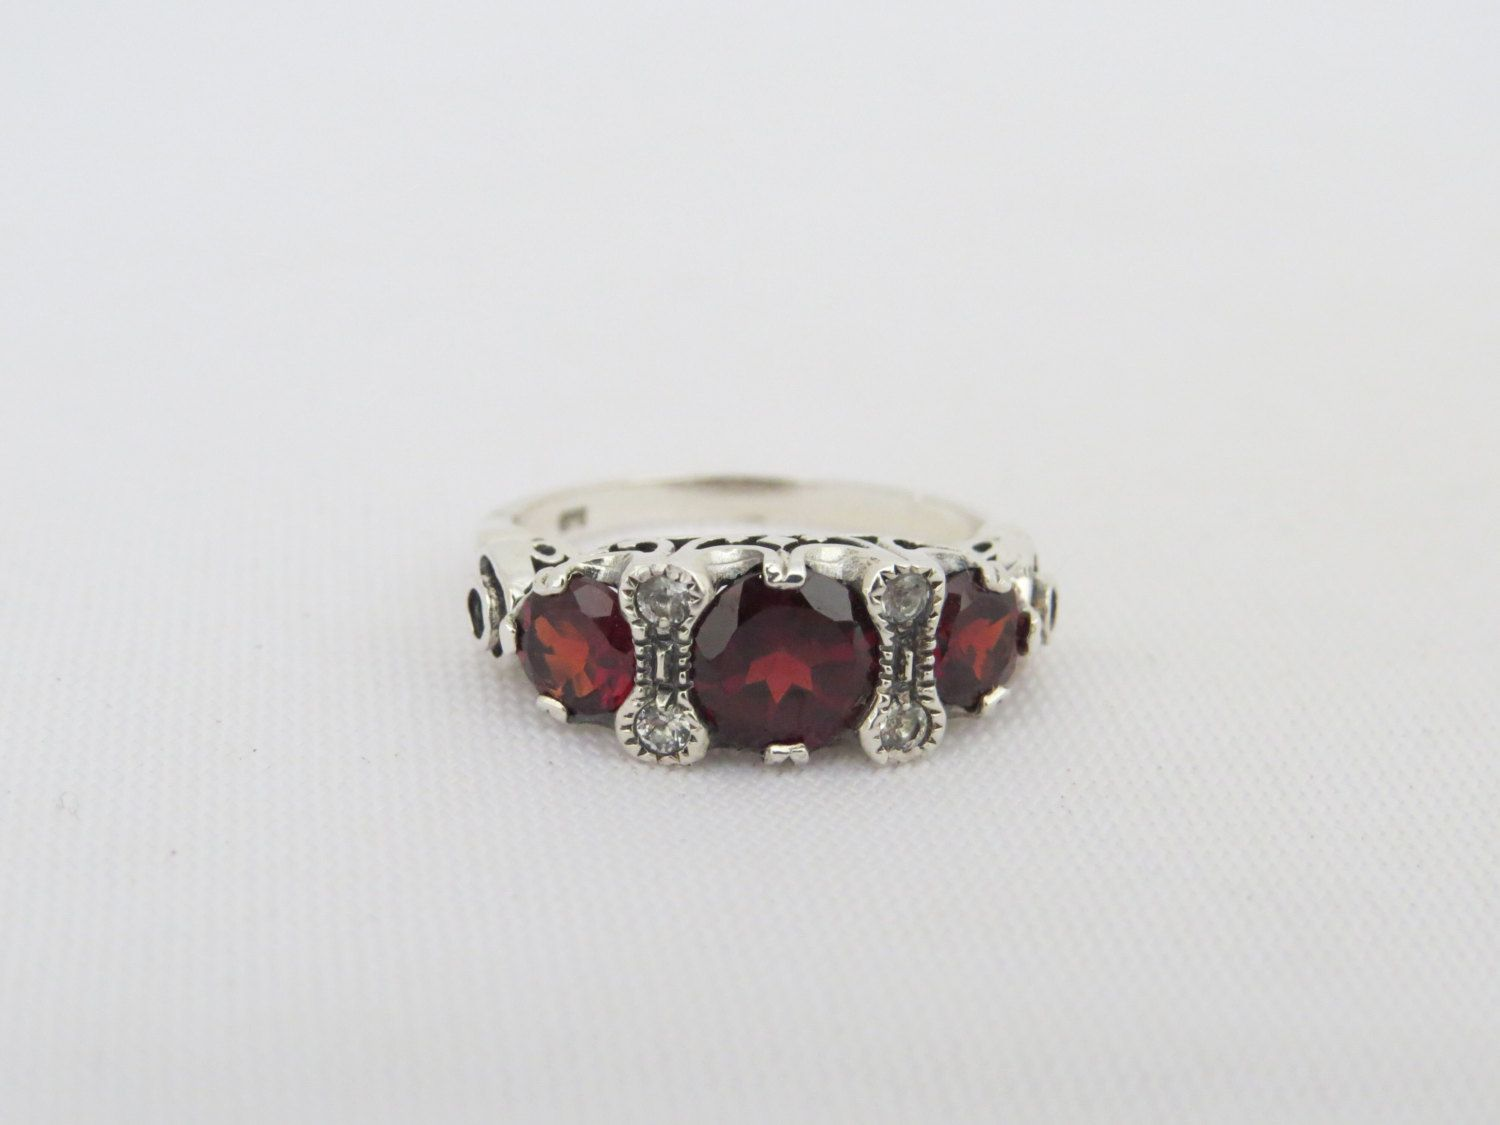 Vintage Sterling Silver Red Garnet & White Topaz Ring Size 6 by wandajewelry2013 on Etsy